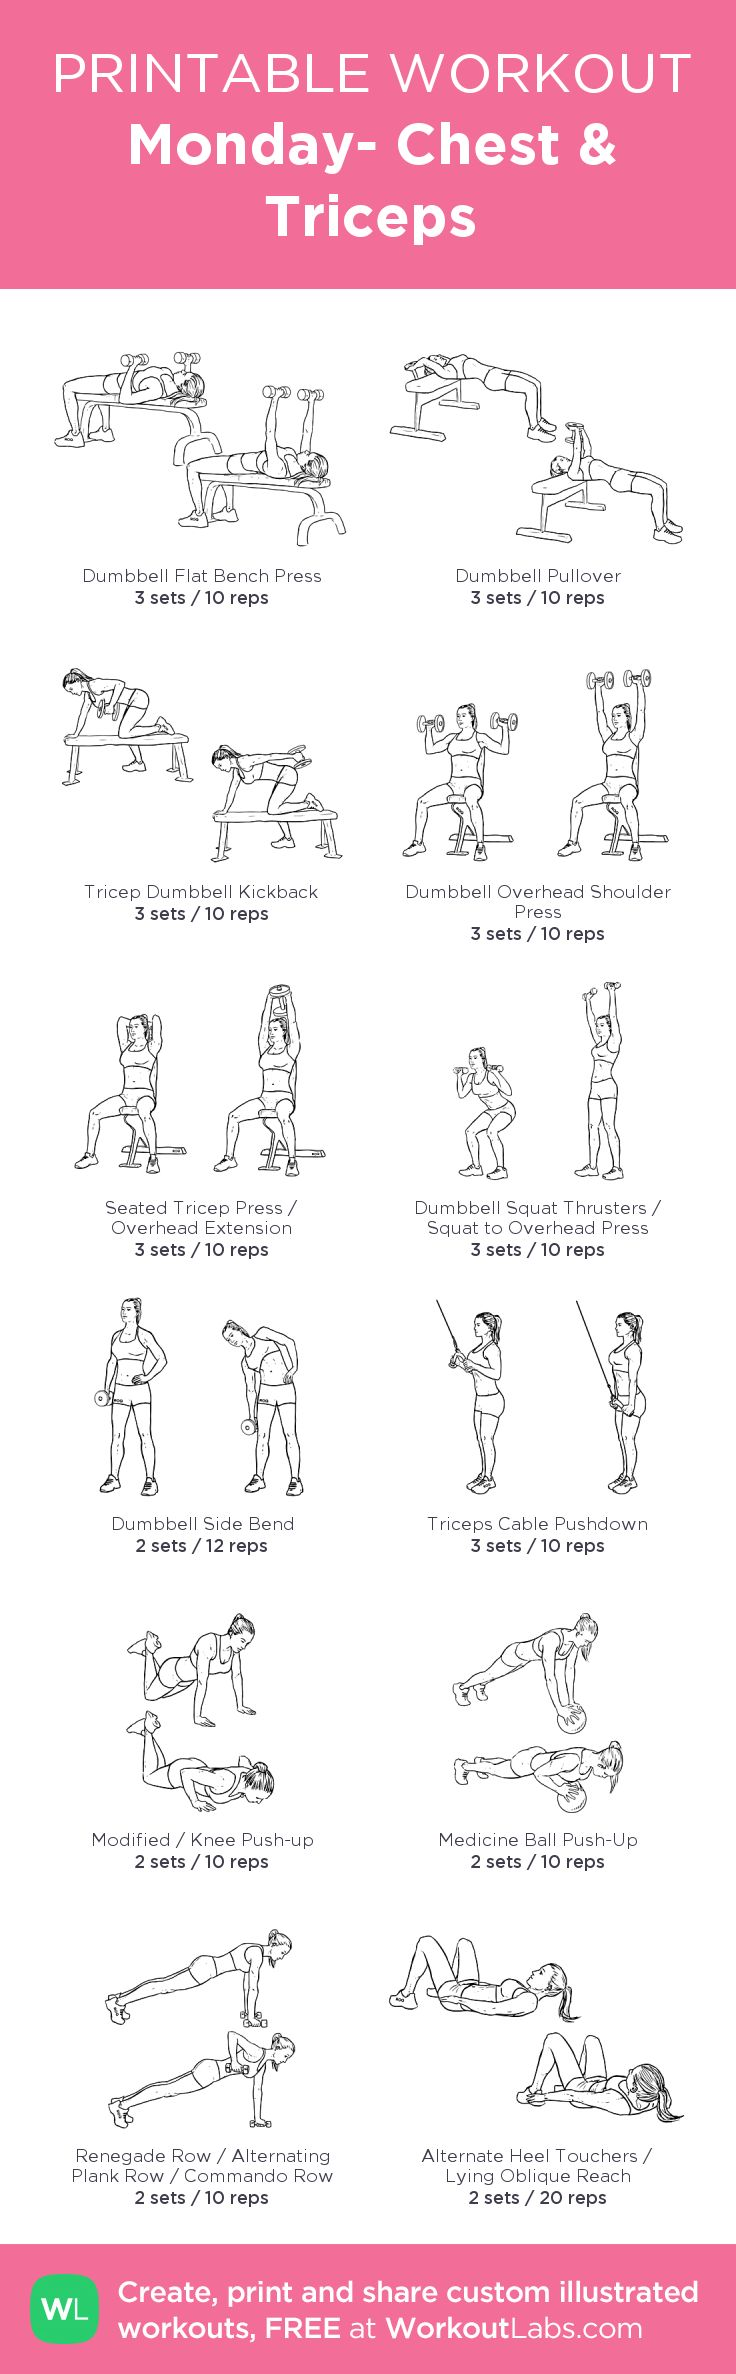 Monday- Chest & Triceps:my visual workout created at WorkoutLabs.com • Click through to customize and download as a FREE PDF! #customworkout